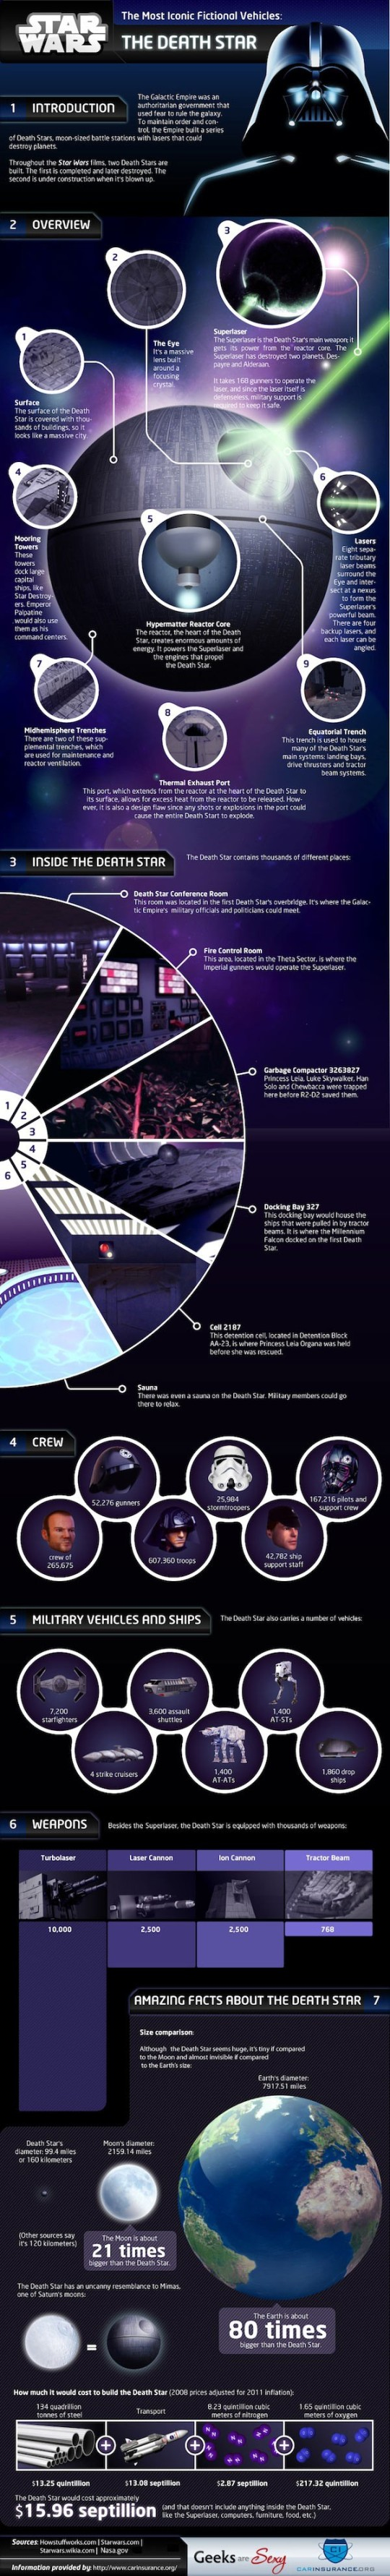 Death-Star-Infografia